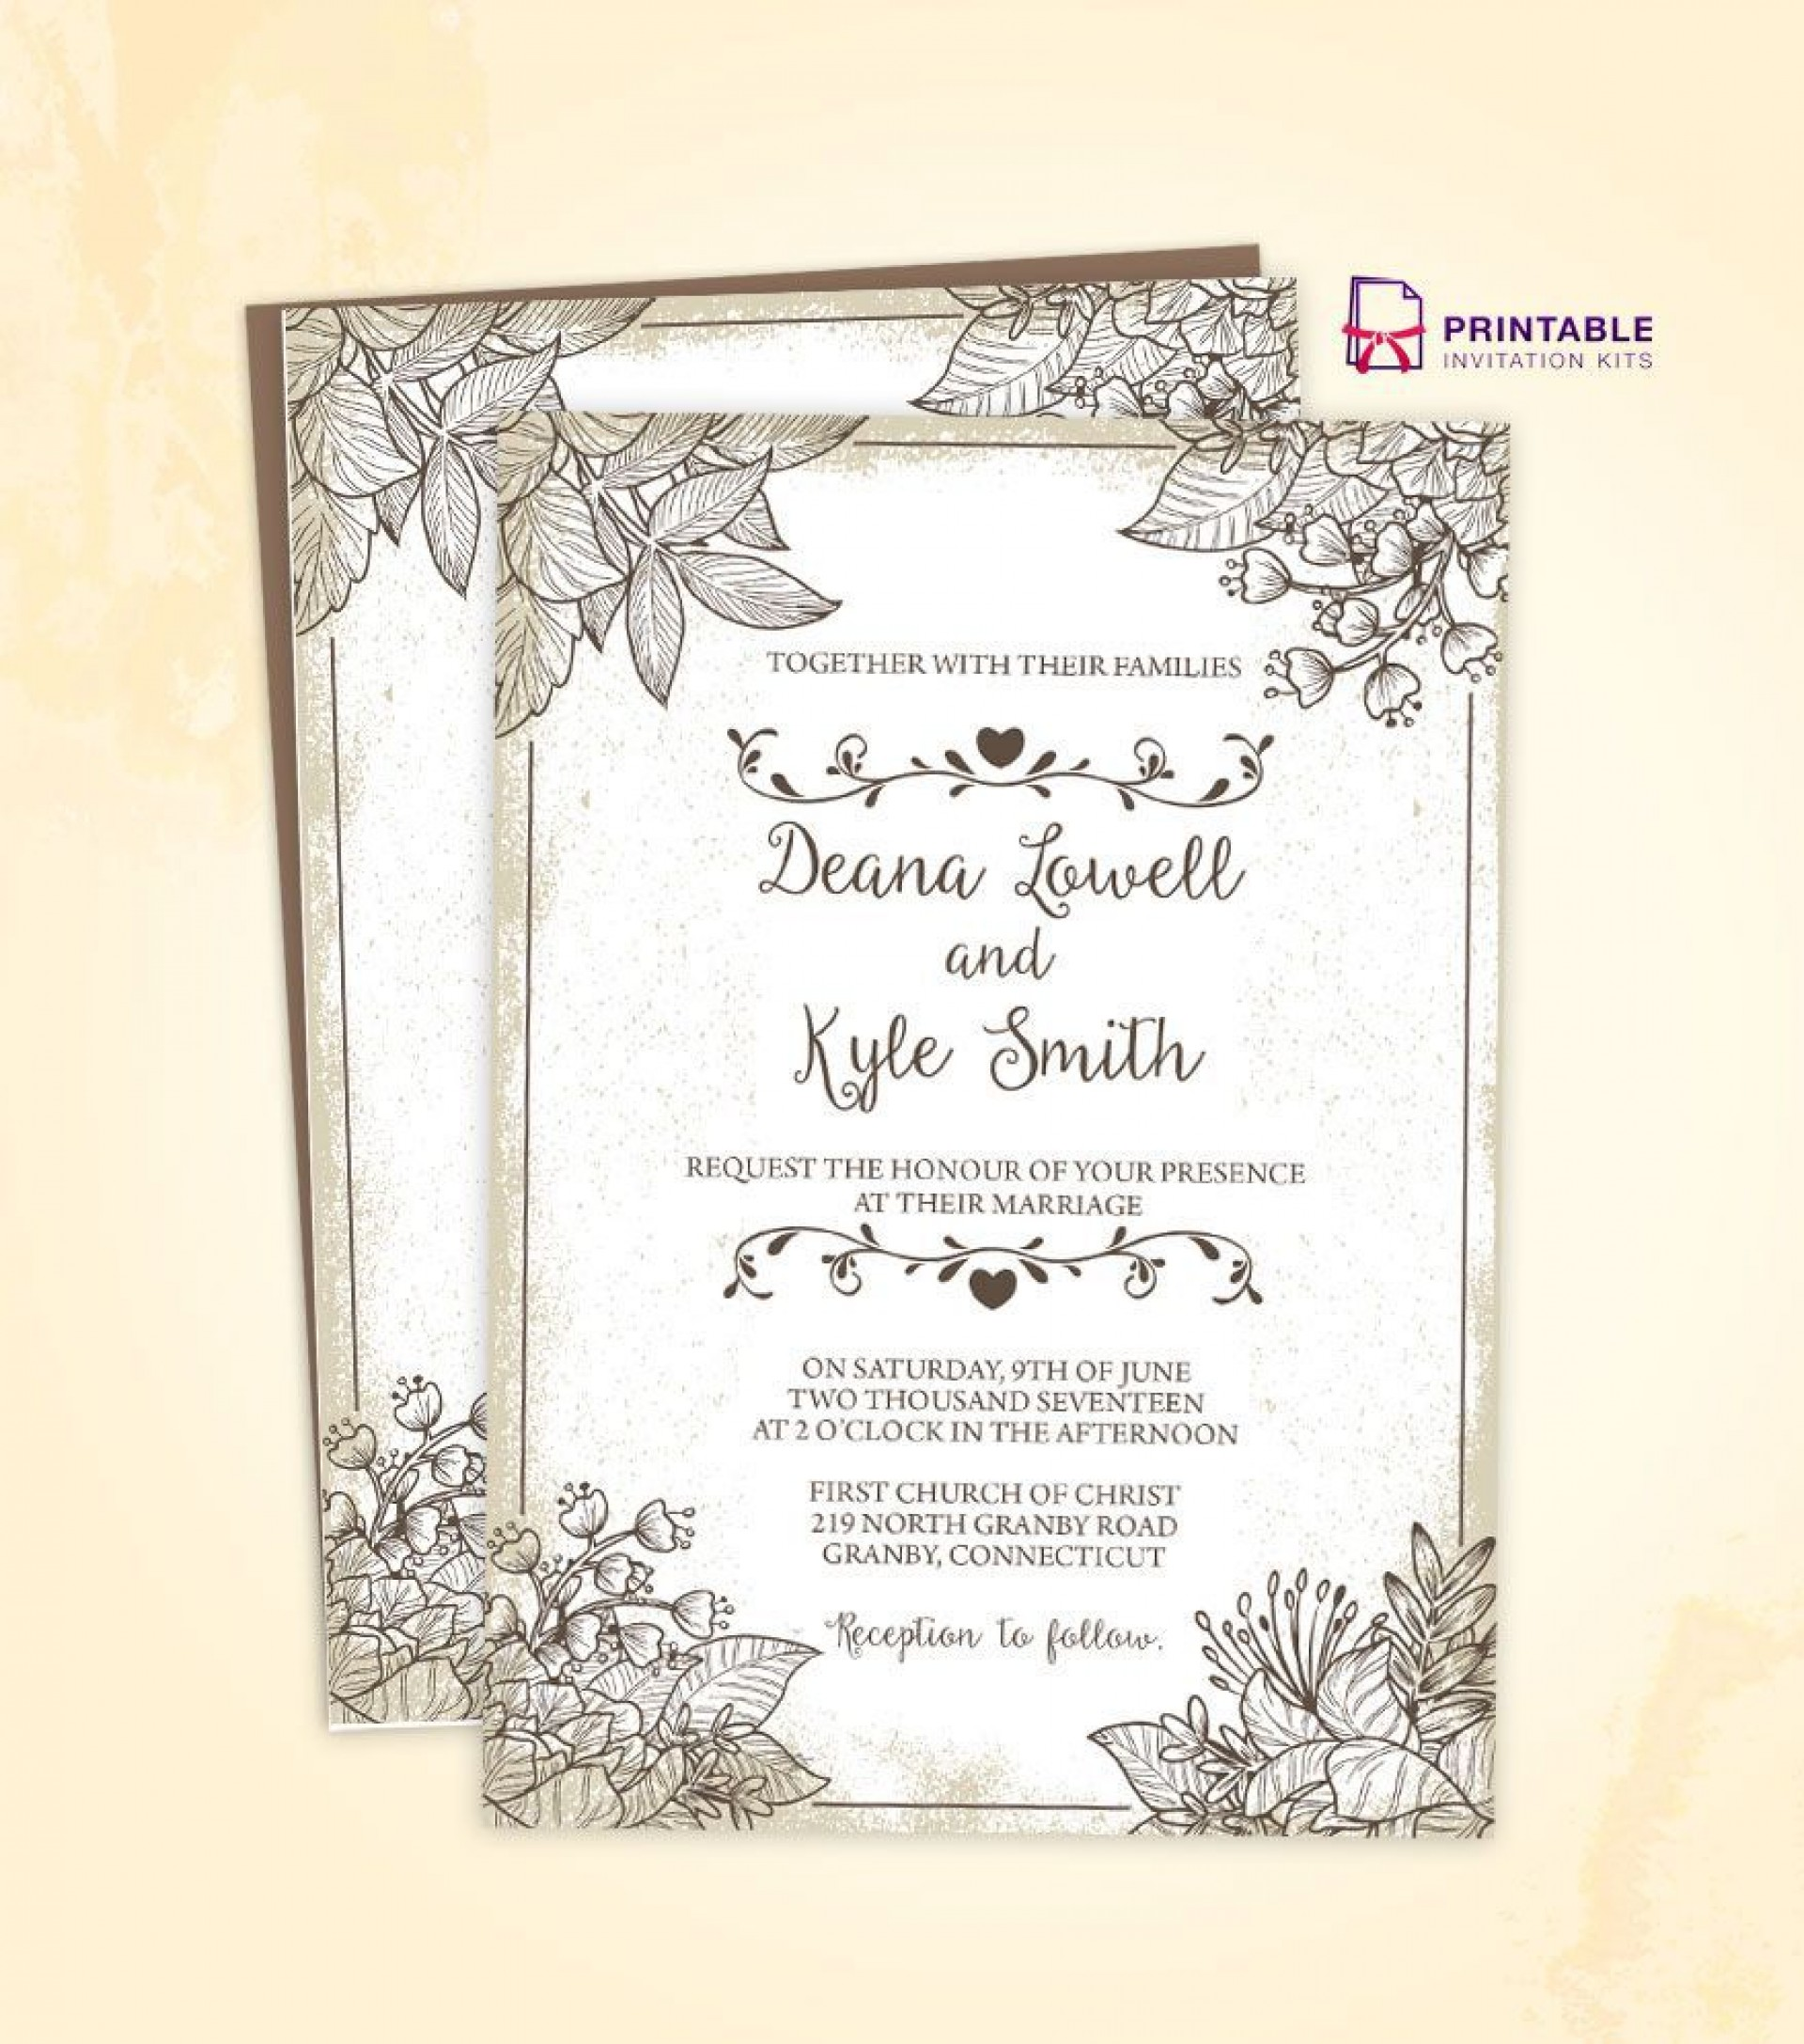 000 Wonderful Free Wedding Invitation Template Download Example  Psd Card Indian1920